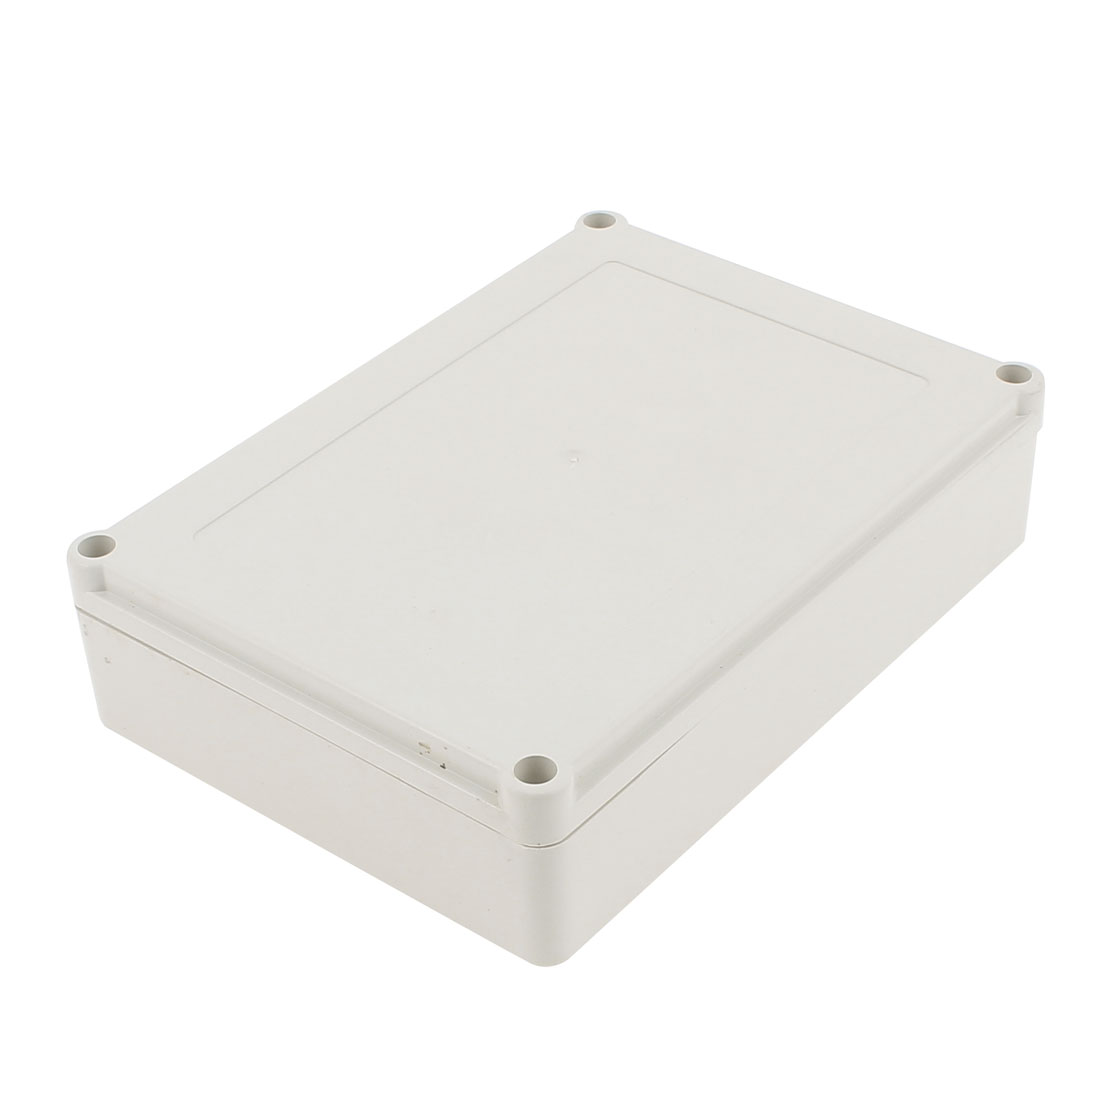 180 x 130 x 45mm Dustproof IP65 Junction Box Terminal Connecting Box Enclosure